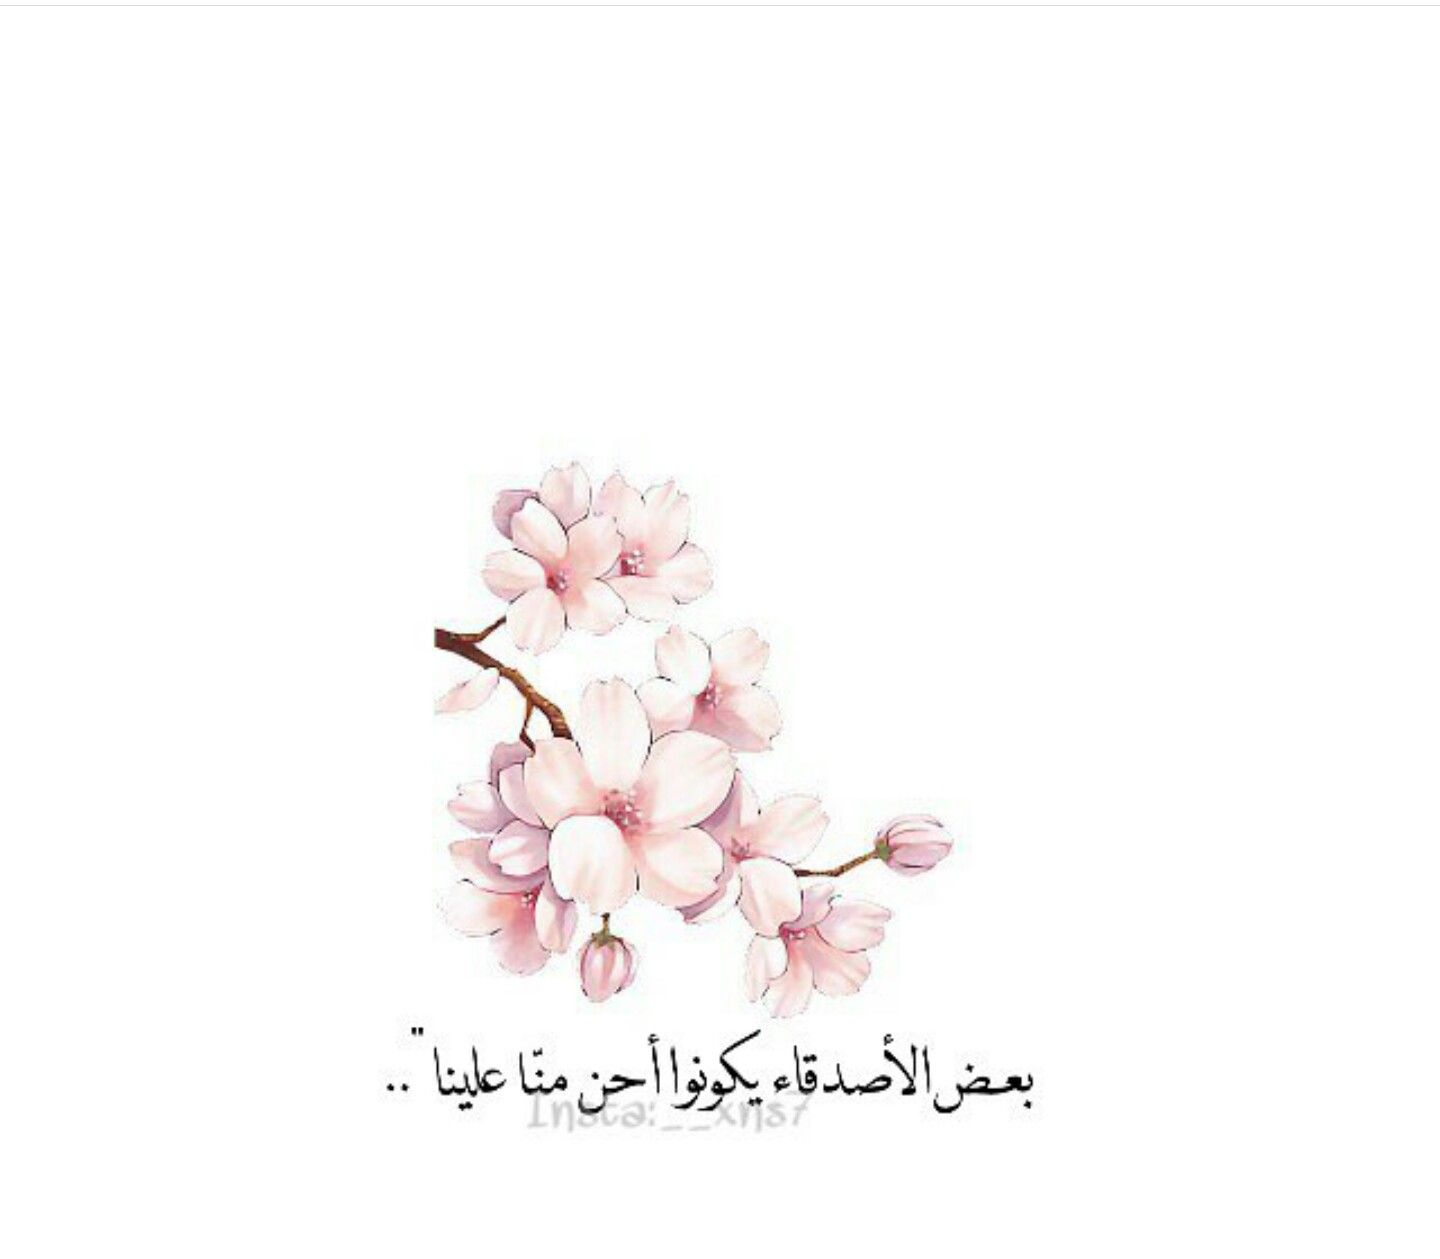 Pin By Kim Rora On ص Flower Illustration Love Words Fall Pictures